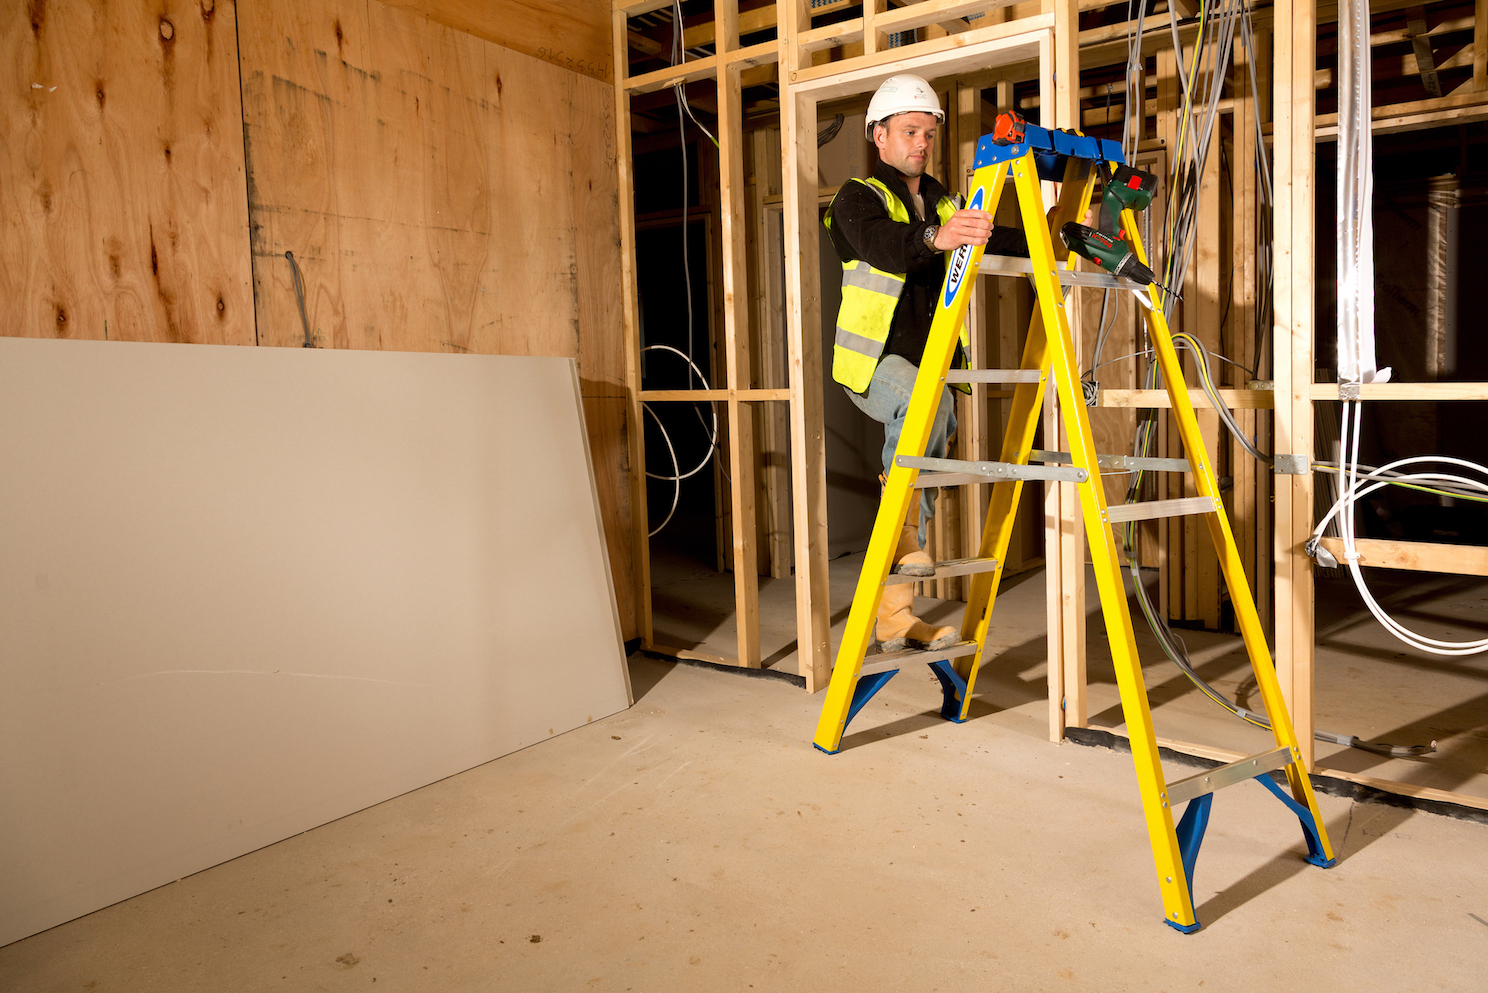 What training do you need to work safely at height?